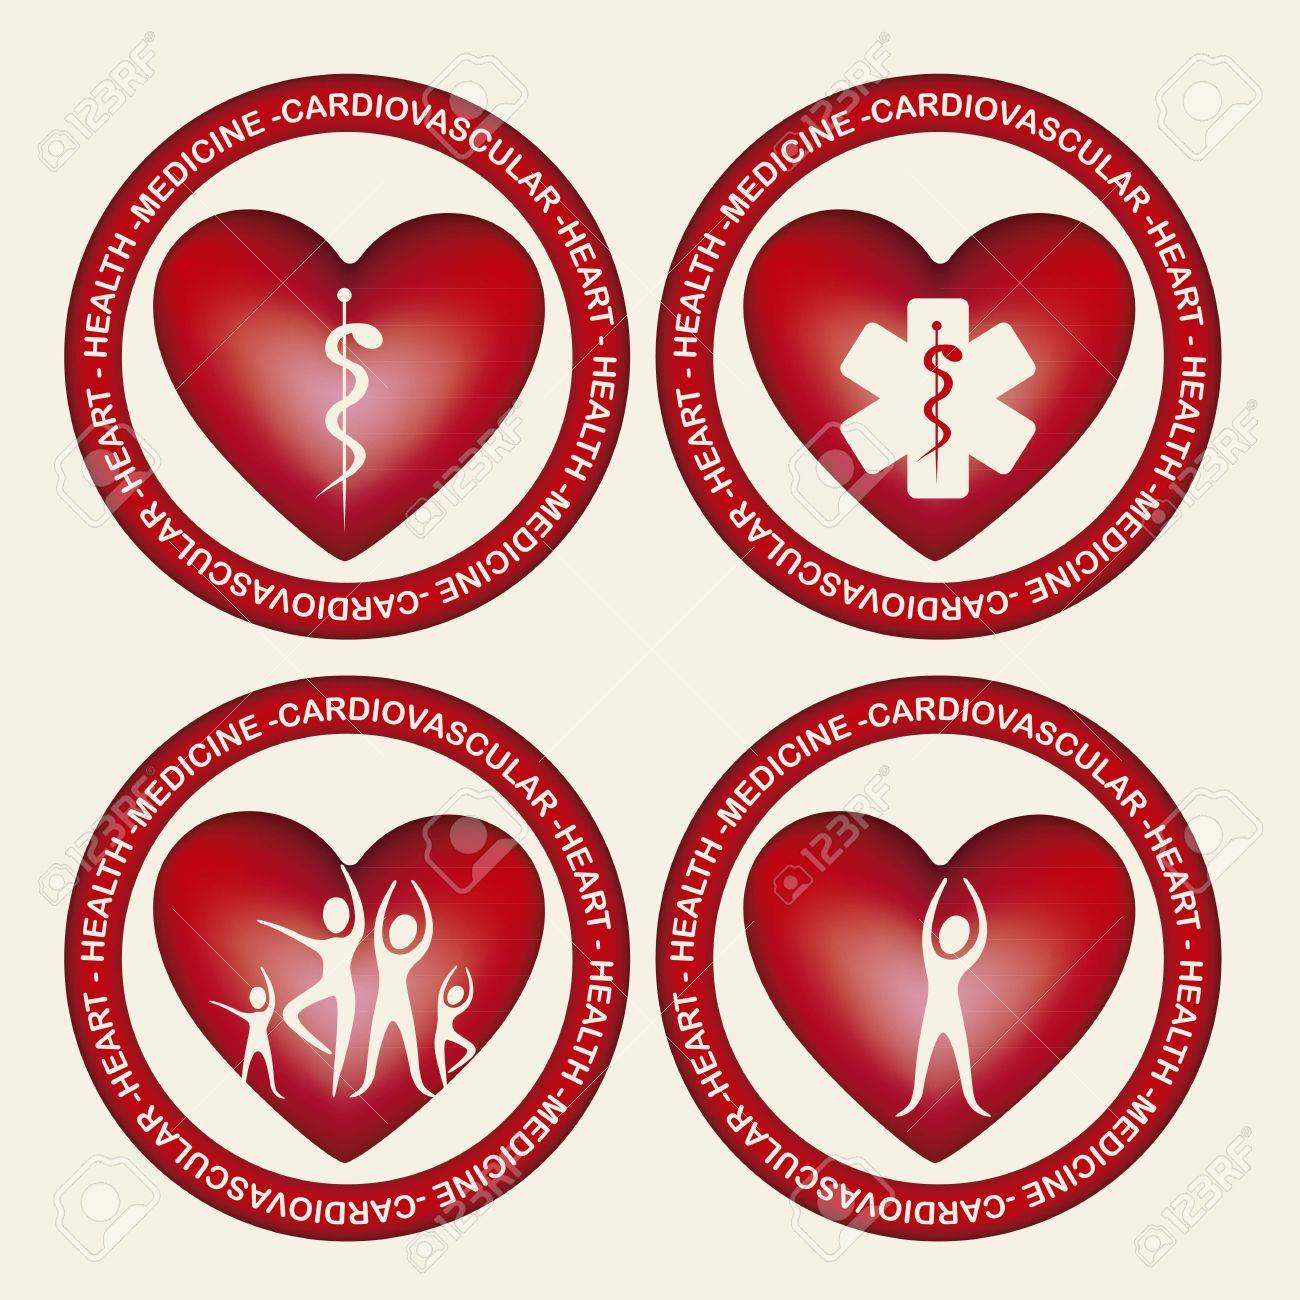 Illustration of health icons, isolated on beige background, medicine icon, vector illustration Stock Vector - 15792834